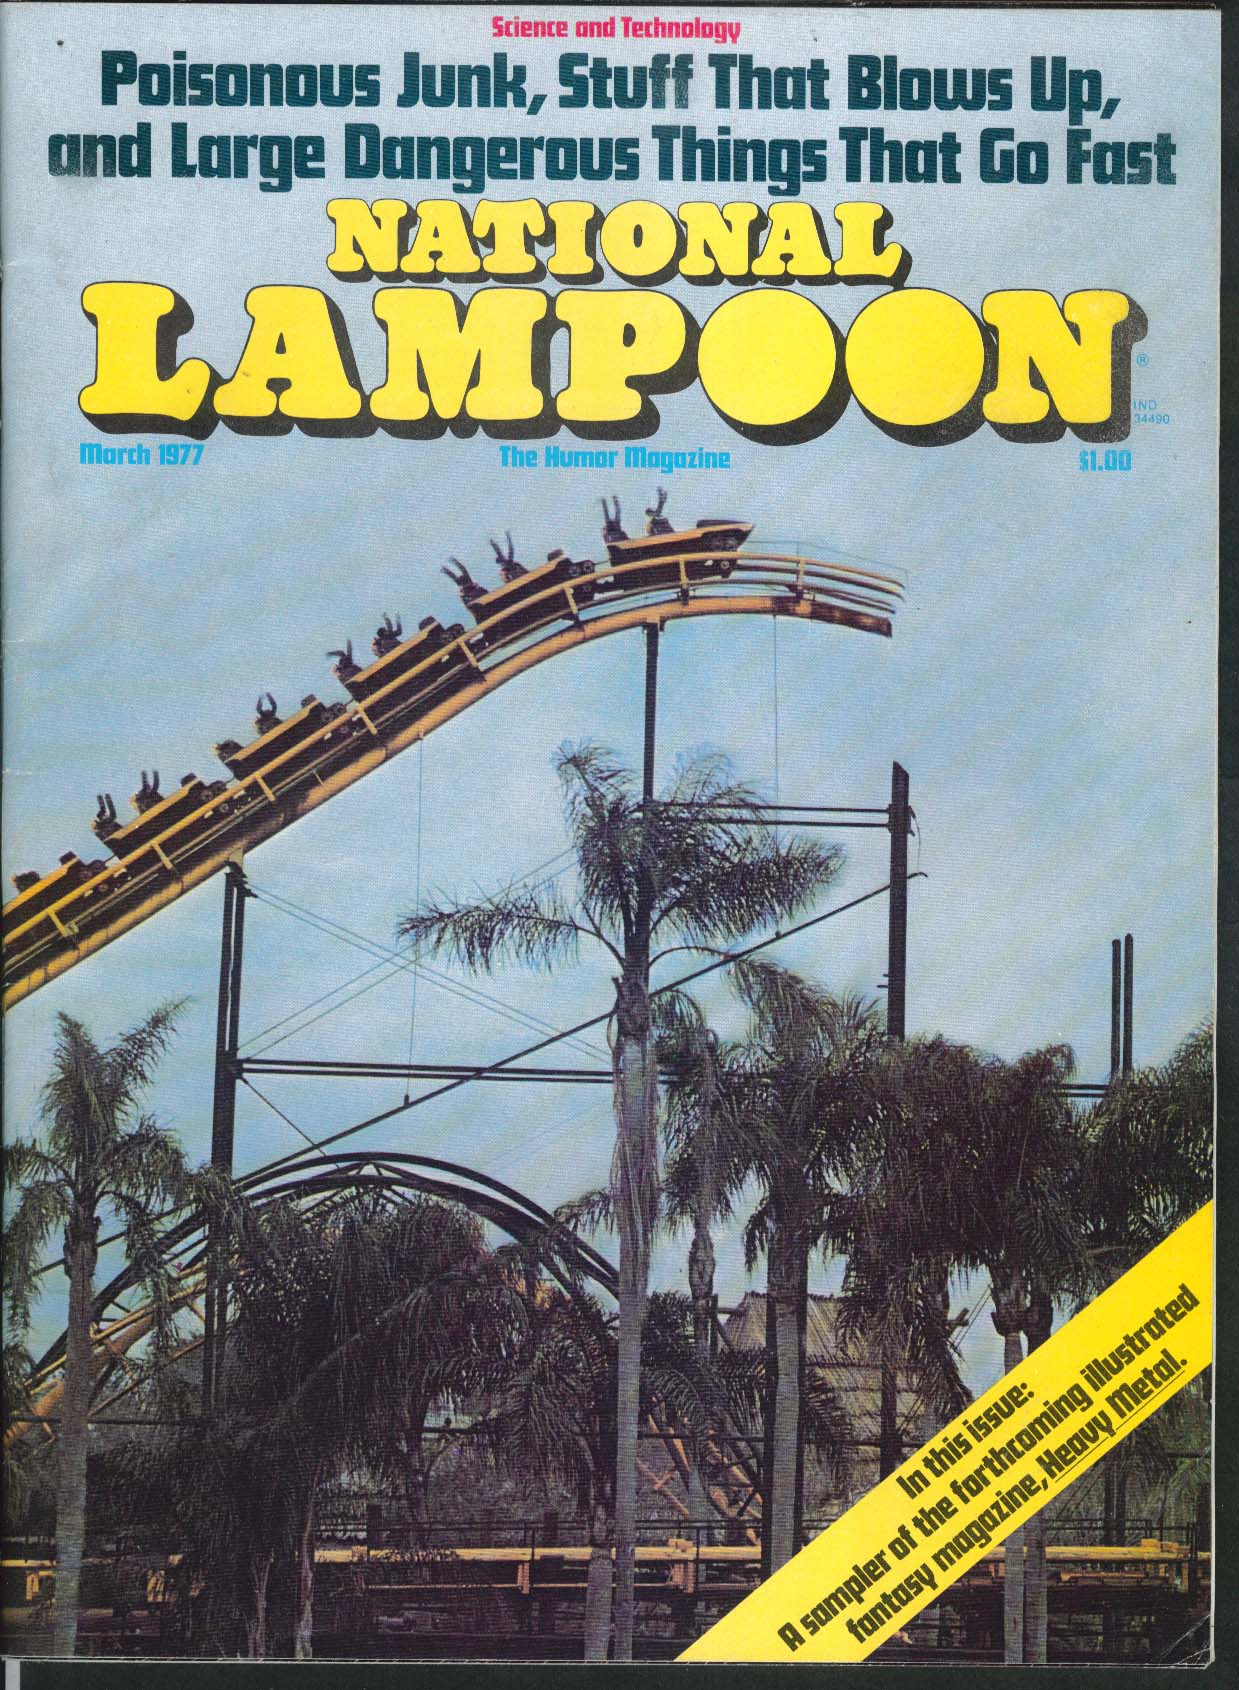 NATIONAL LAMPOON Heavy Metal magazine preview 3 1977